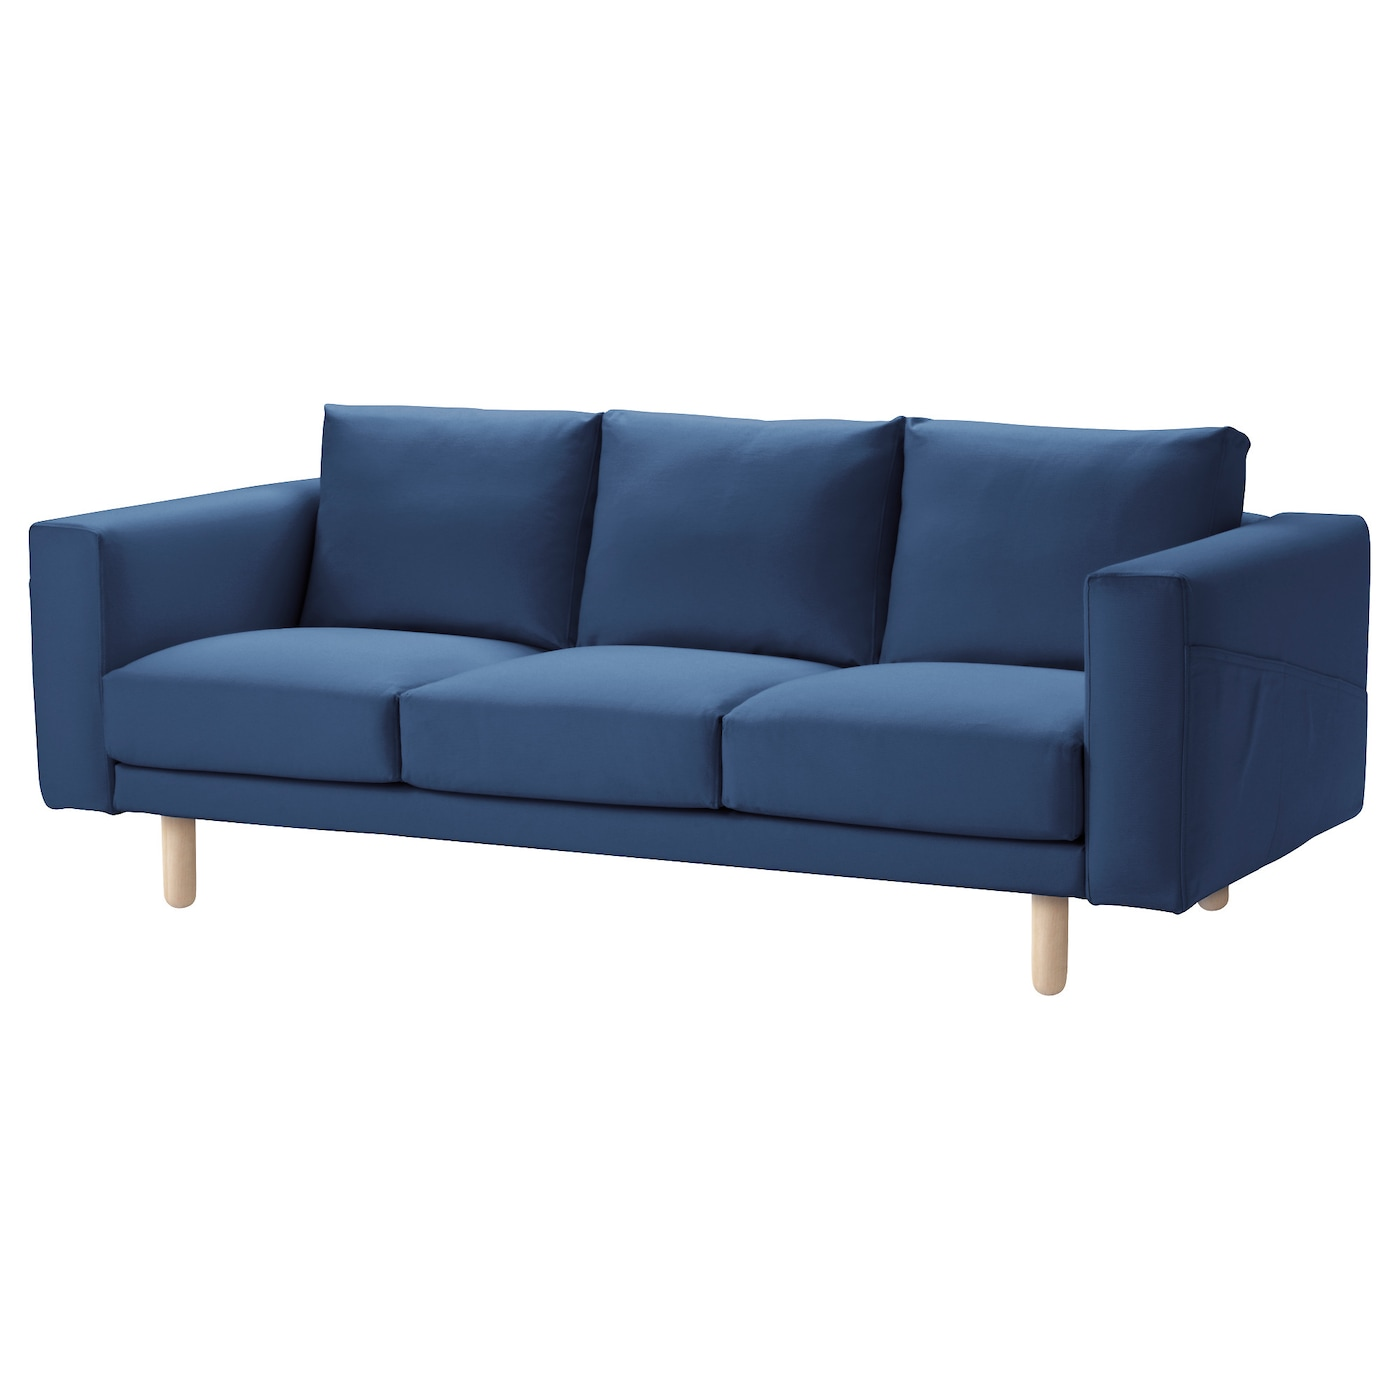 norsborg three seat sofa gr sbo dark blue birch ikea. Black Bedroom Furniture Sets. Home Design Ideas